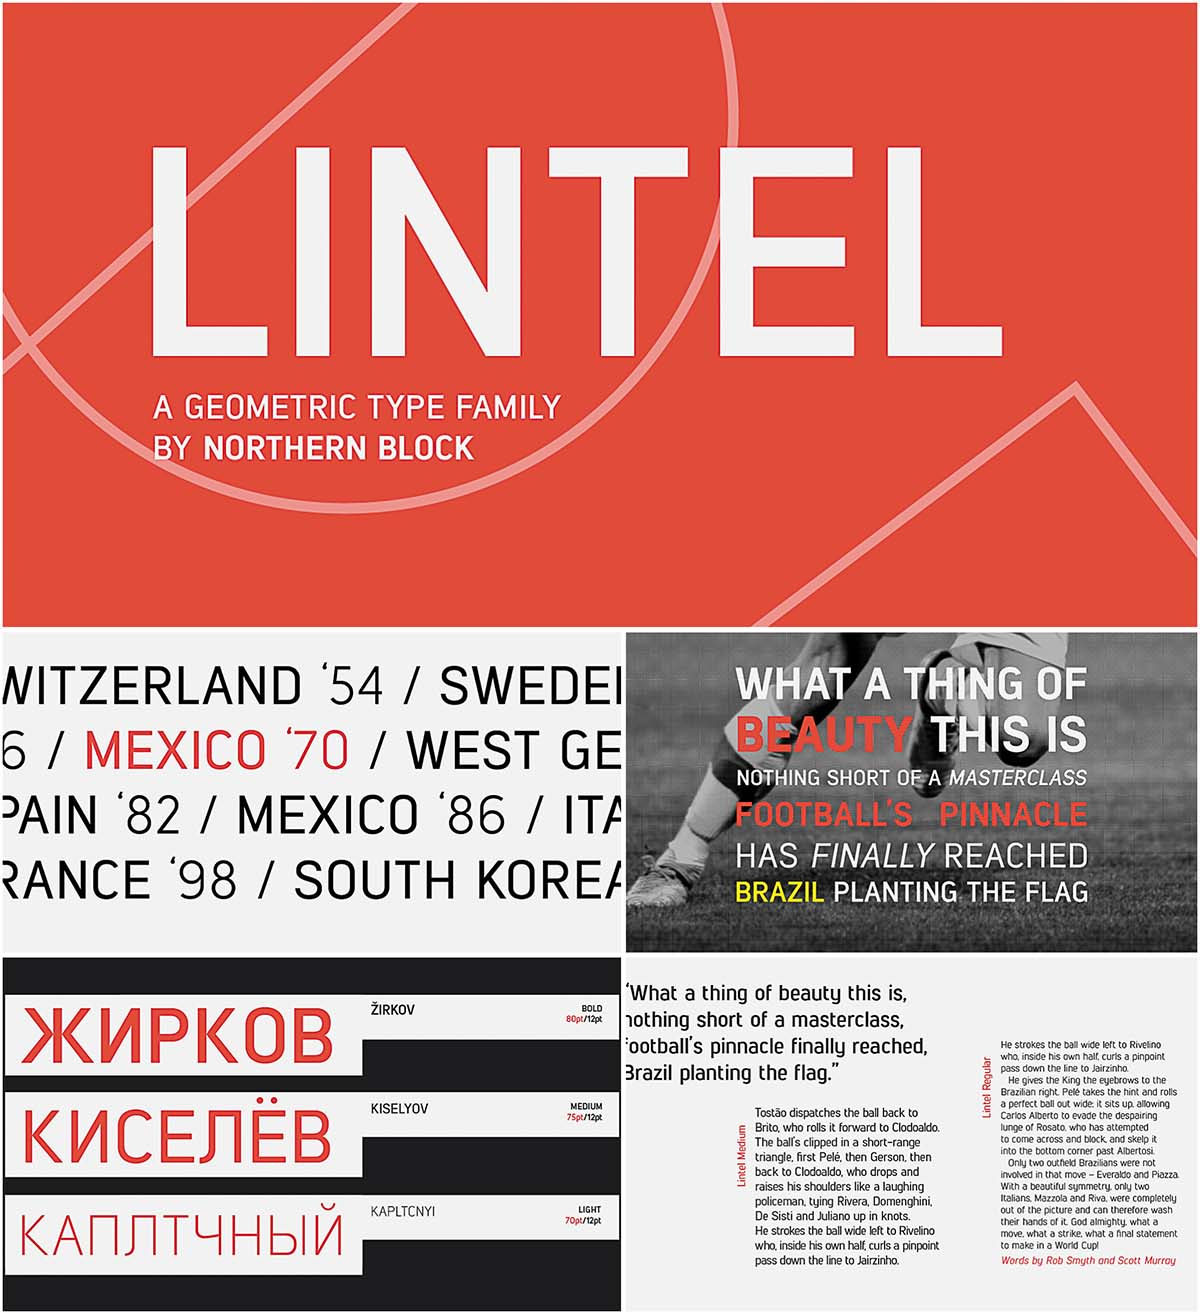 Lintel font family with cyrillic typeface